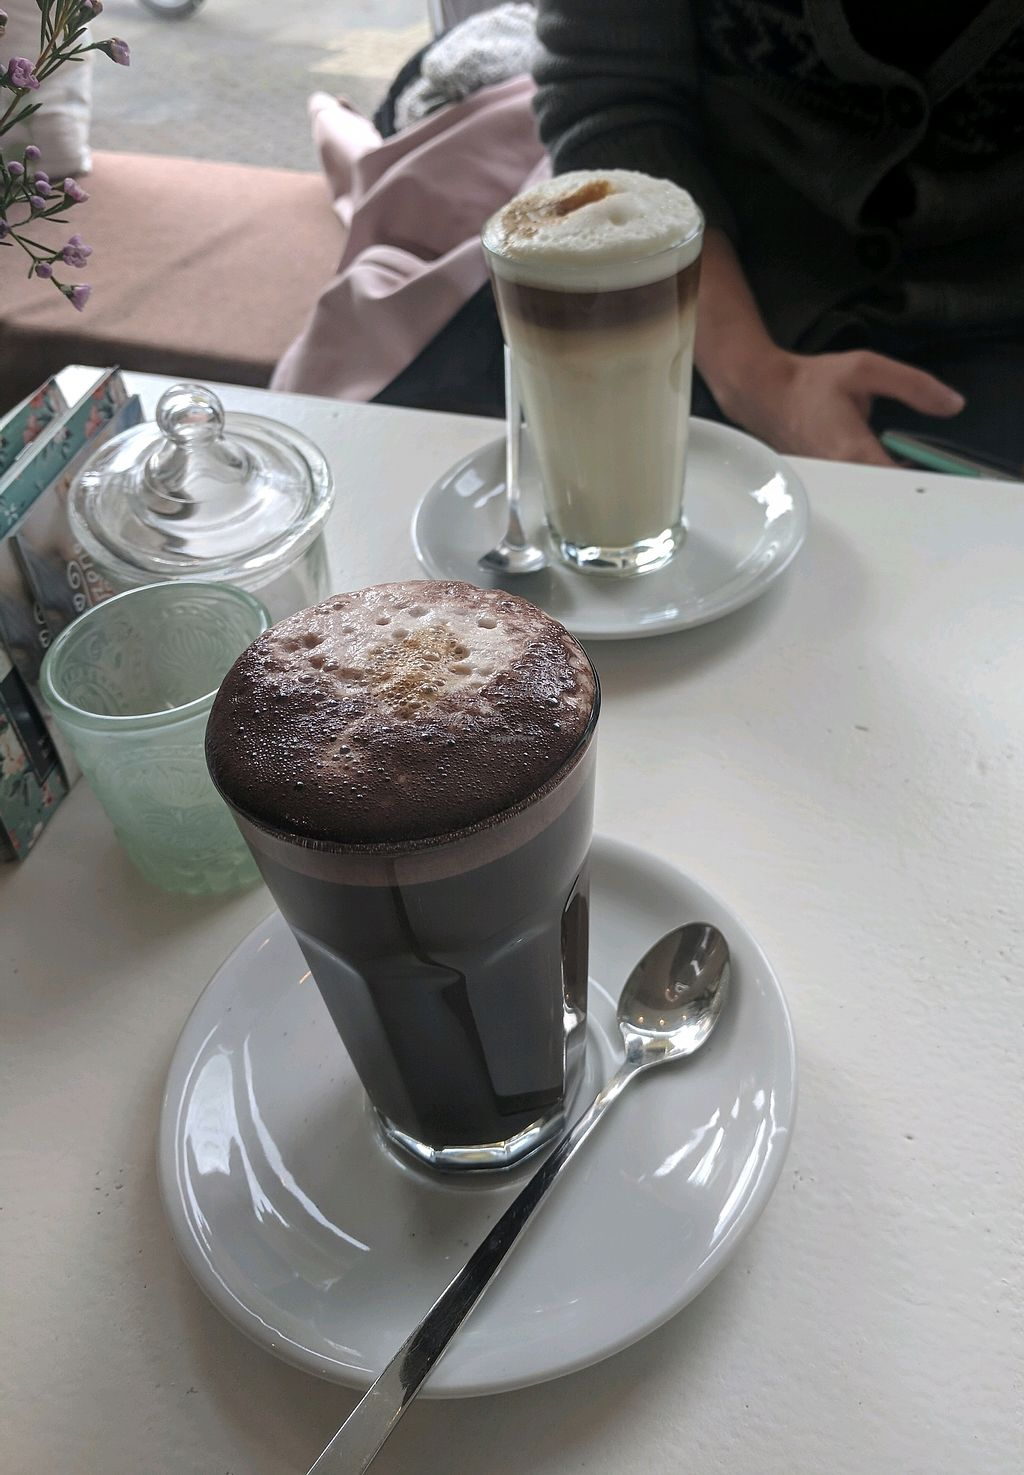 """Photo of Pennycakes  by <a href=""""/members/profile/mitcharf"""">mitcharf</a> <br/>Dark chocolate latte and latte macchiato <br/> October 23, 2017  - <a href='/contact/abuse/image/56478/317952'>Report</a>"""